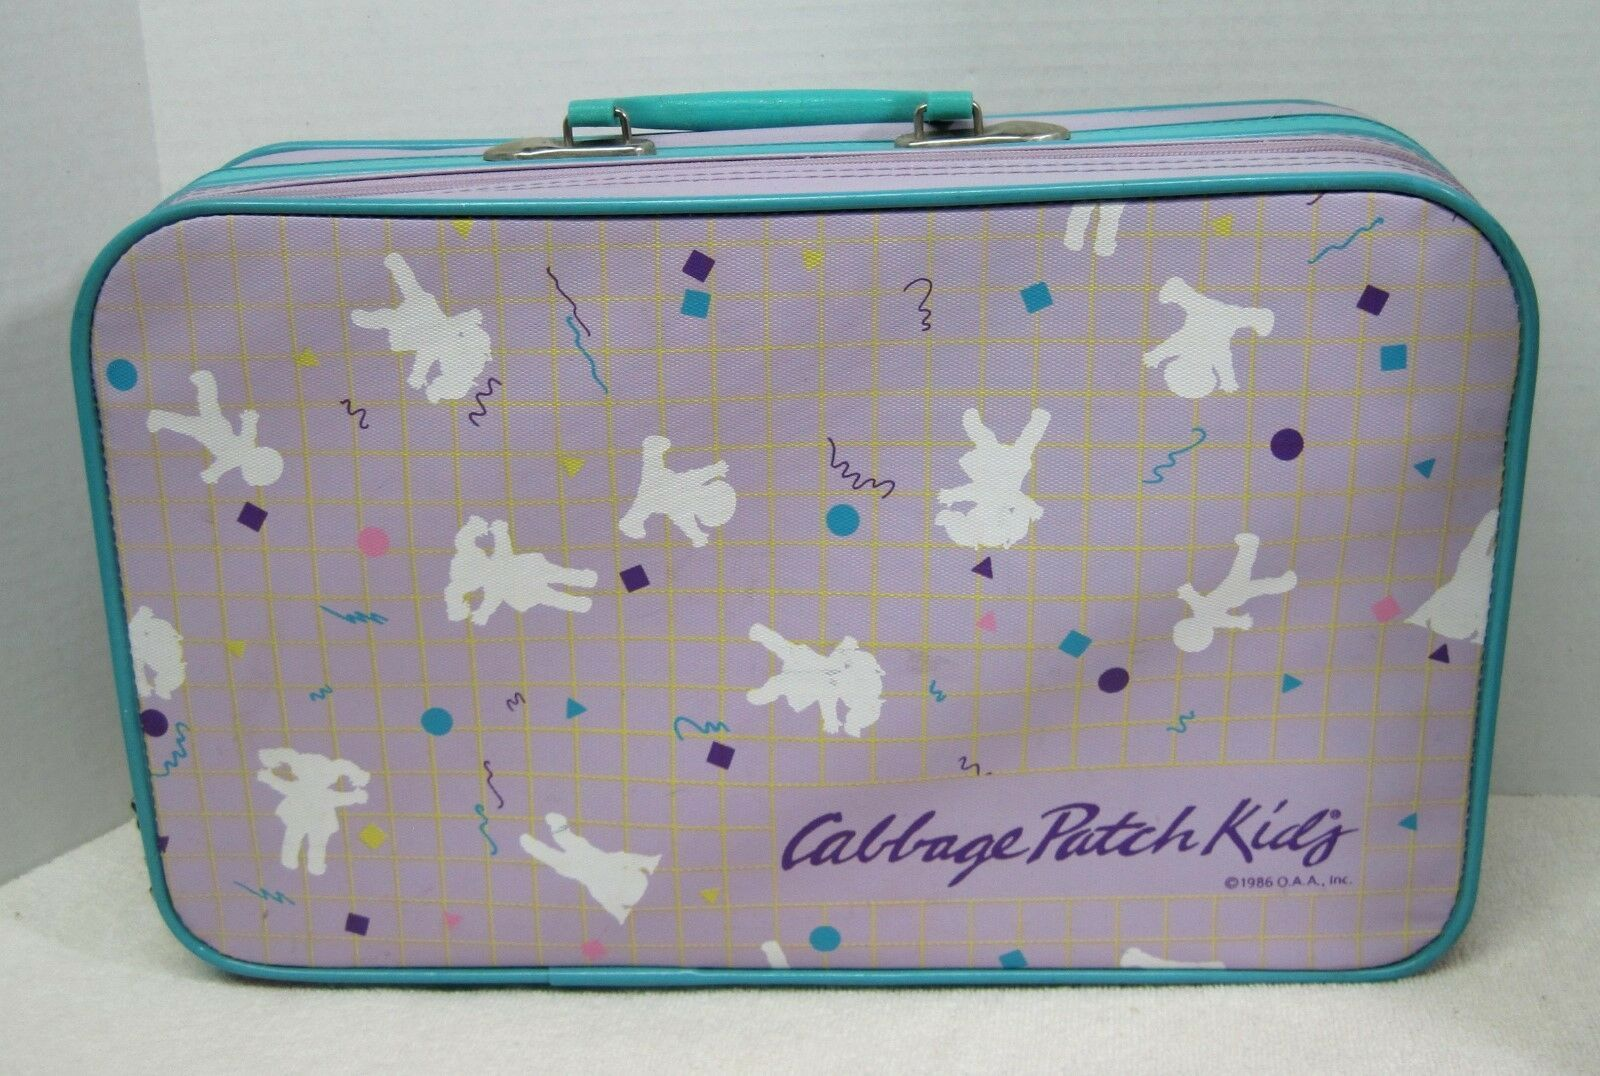 1986 Cabbage Patch Kids Purple and Turquoise Suitcase Has Slight Wear Good Zippe - $36.14